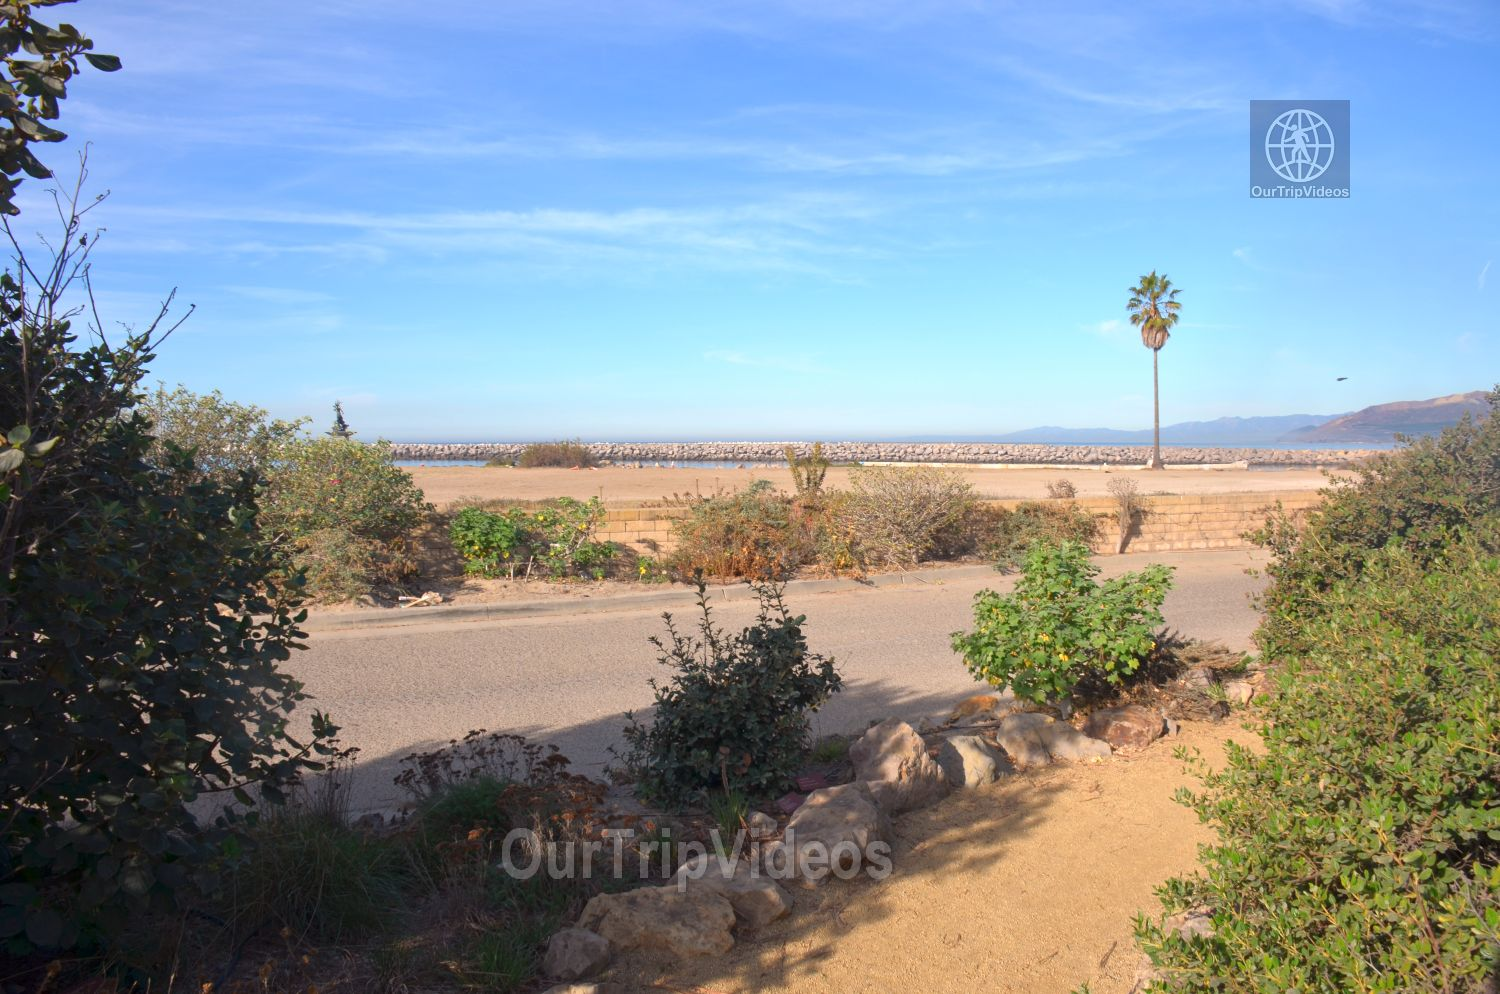 The Robert JL Visitor Center and Harbor cove beach, Ventura, CA, USA - Picture 11 of 25